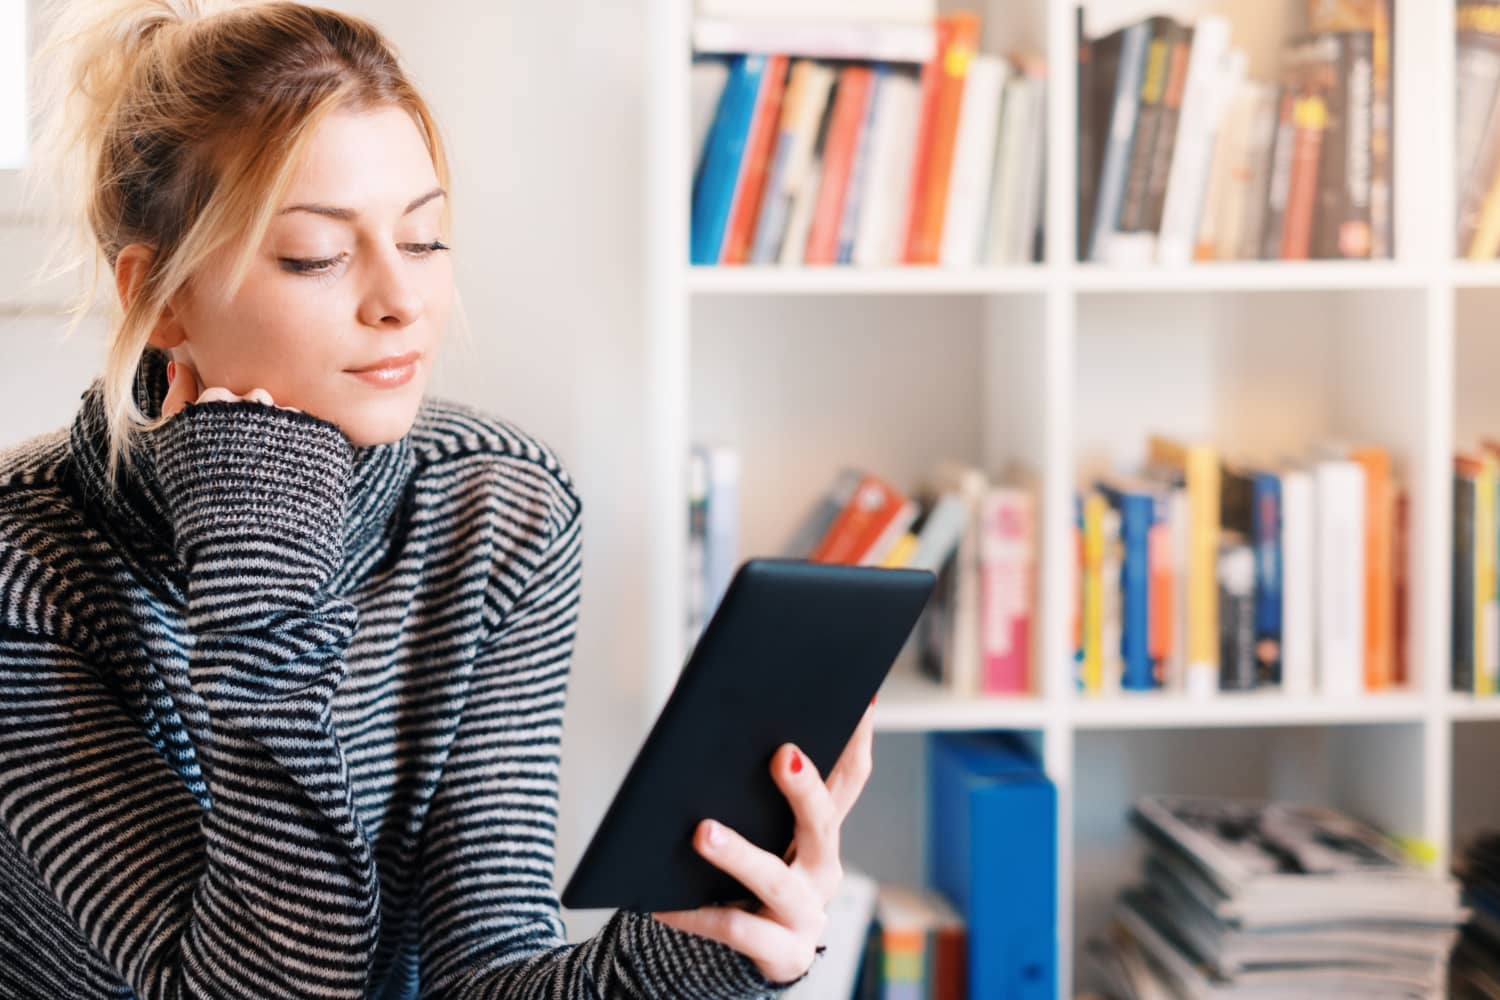 9 E-Reader Hacks That Will Help You Save Money, Share Books With Friends, and Read More Than Ever